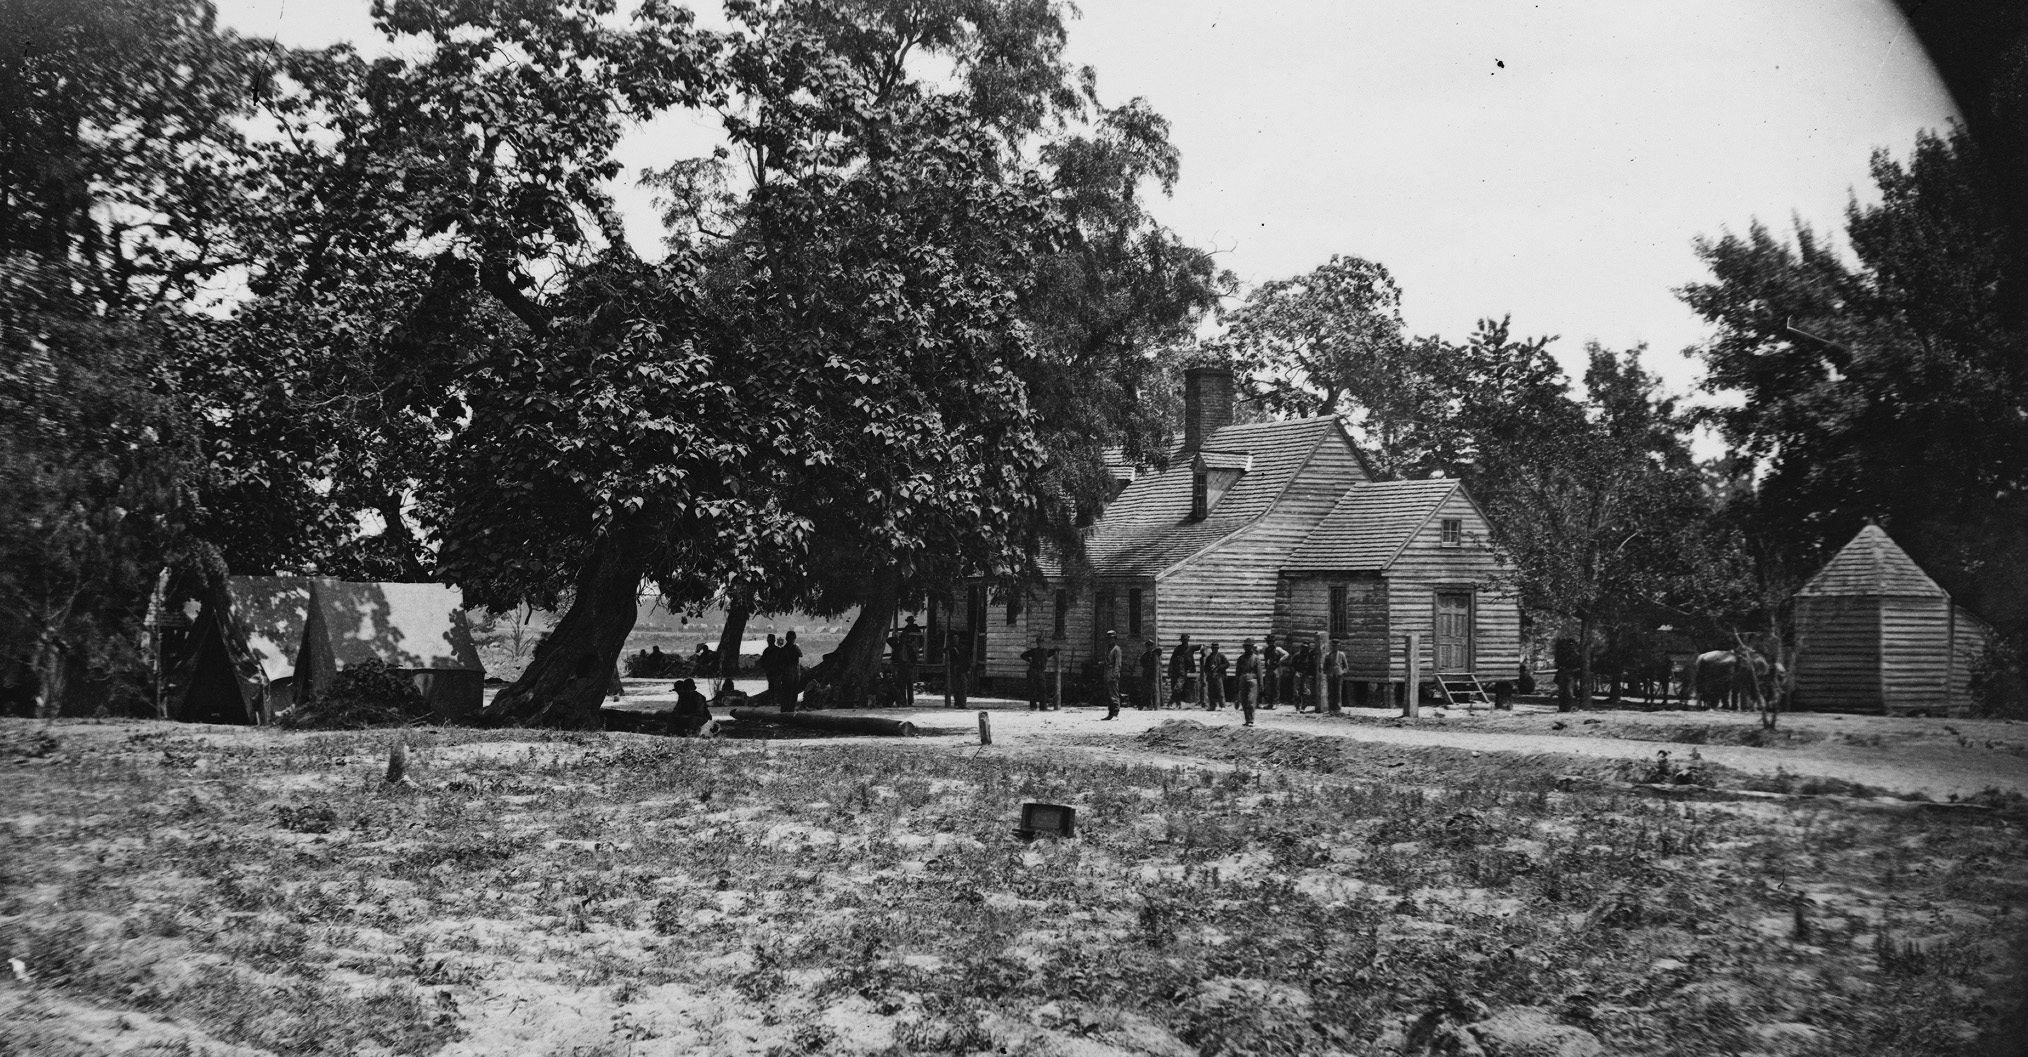 The battle at cold harbor